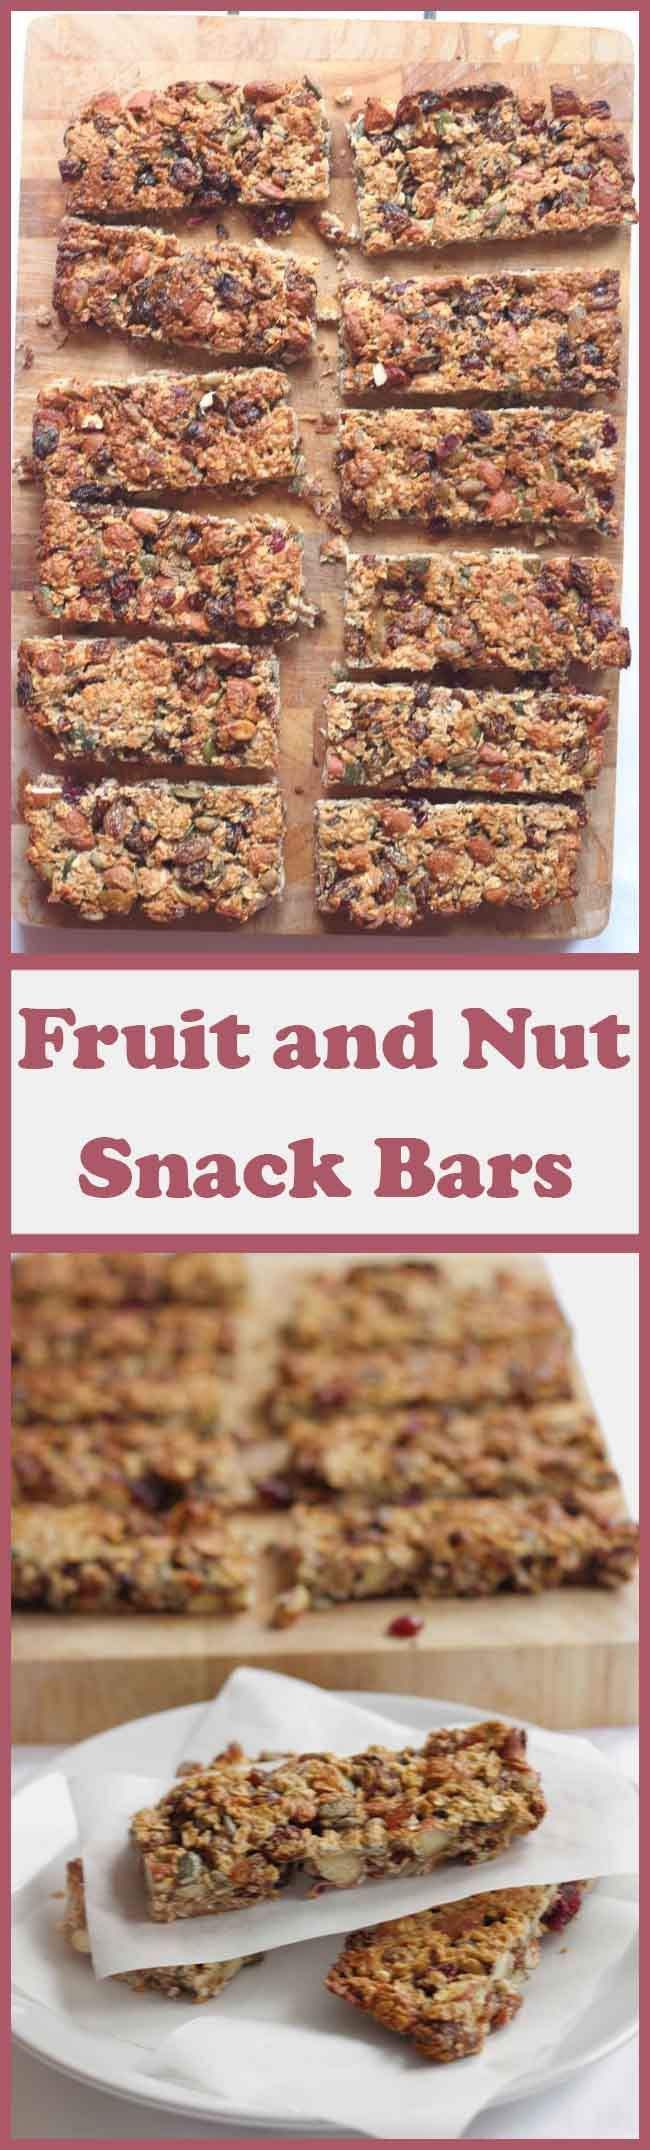 fruits that start with p healthy fruit snack recipe